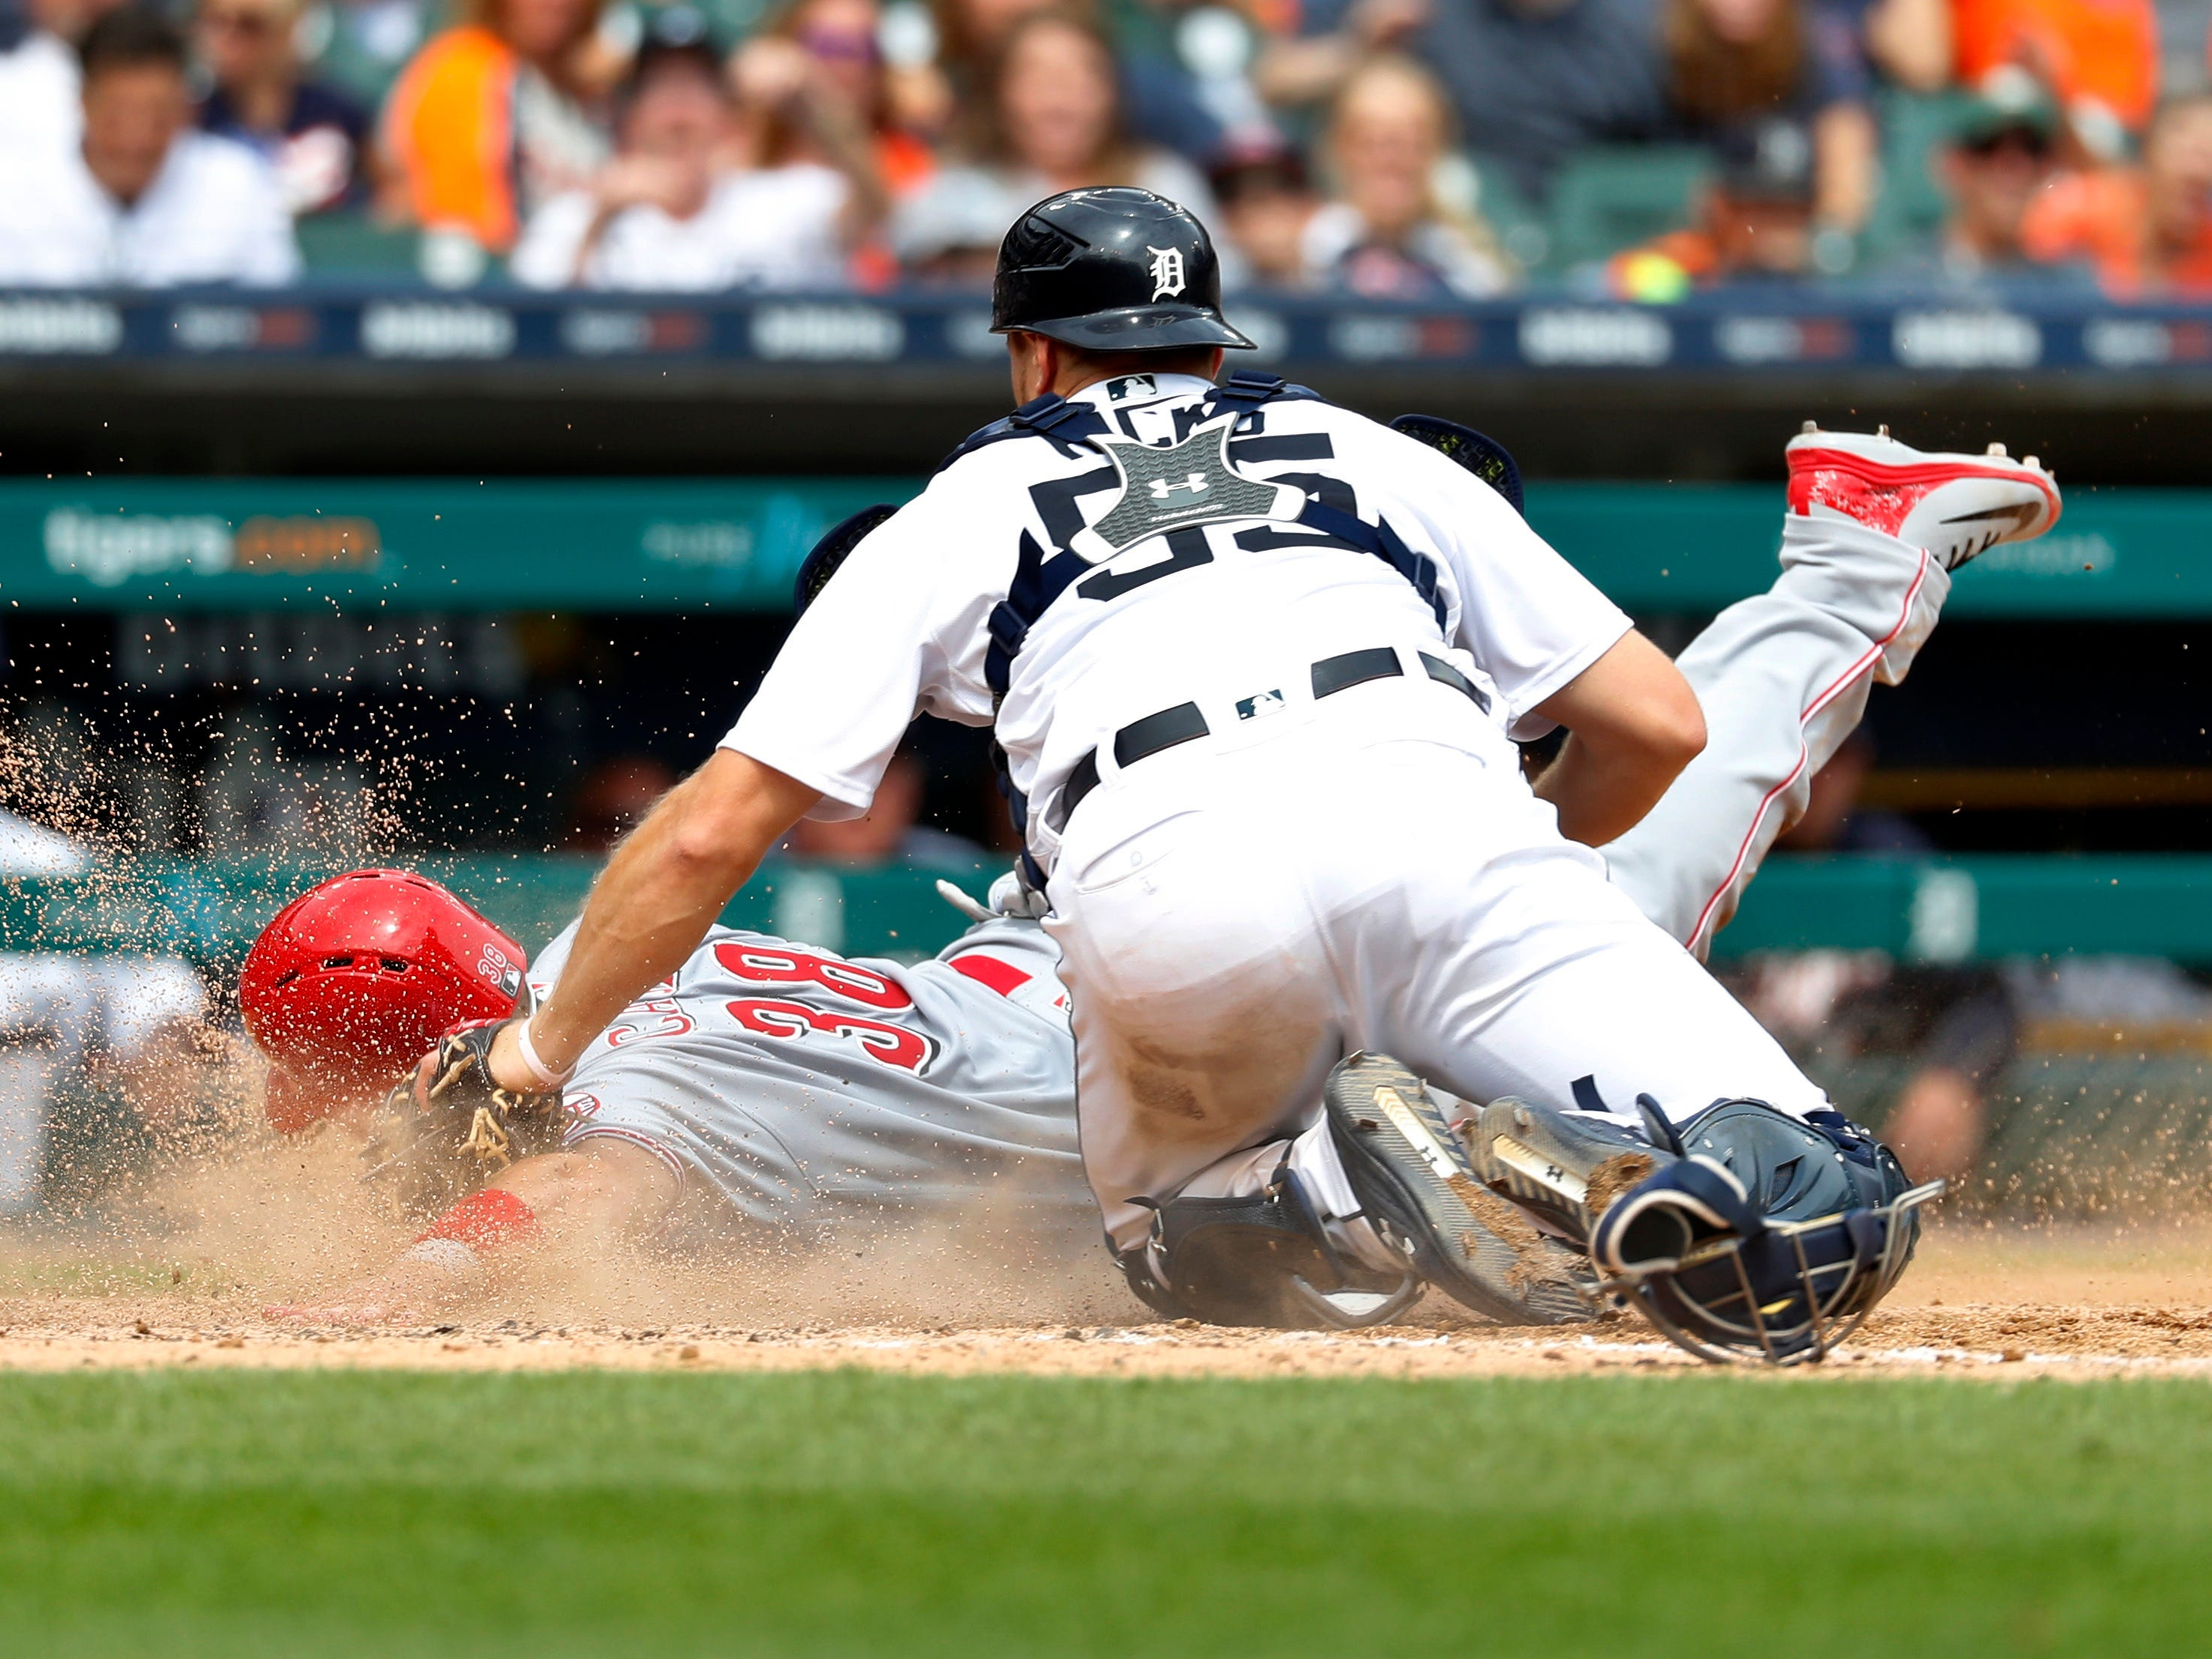 Tigers catcher John Hicks  tags out Cincinnati's Curt Casali at home plate in the seventh inning.